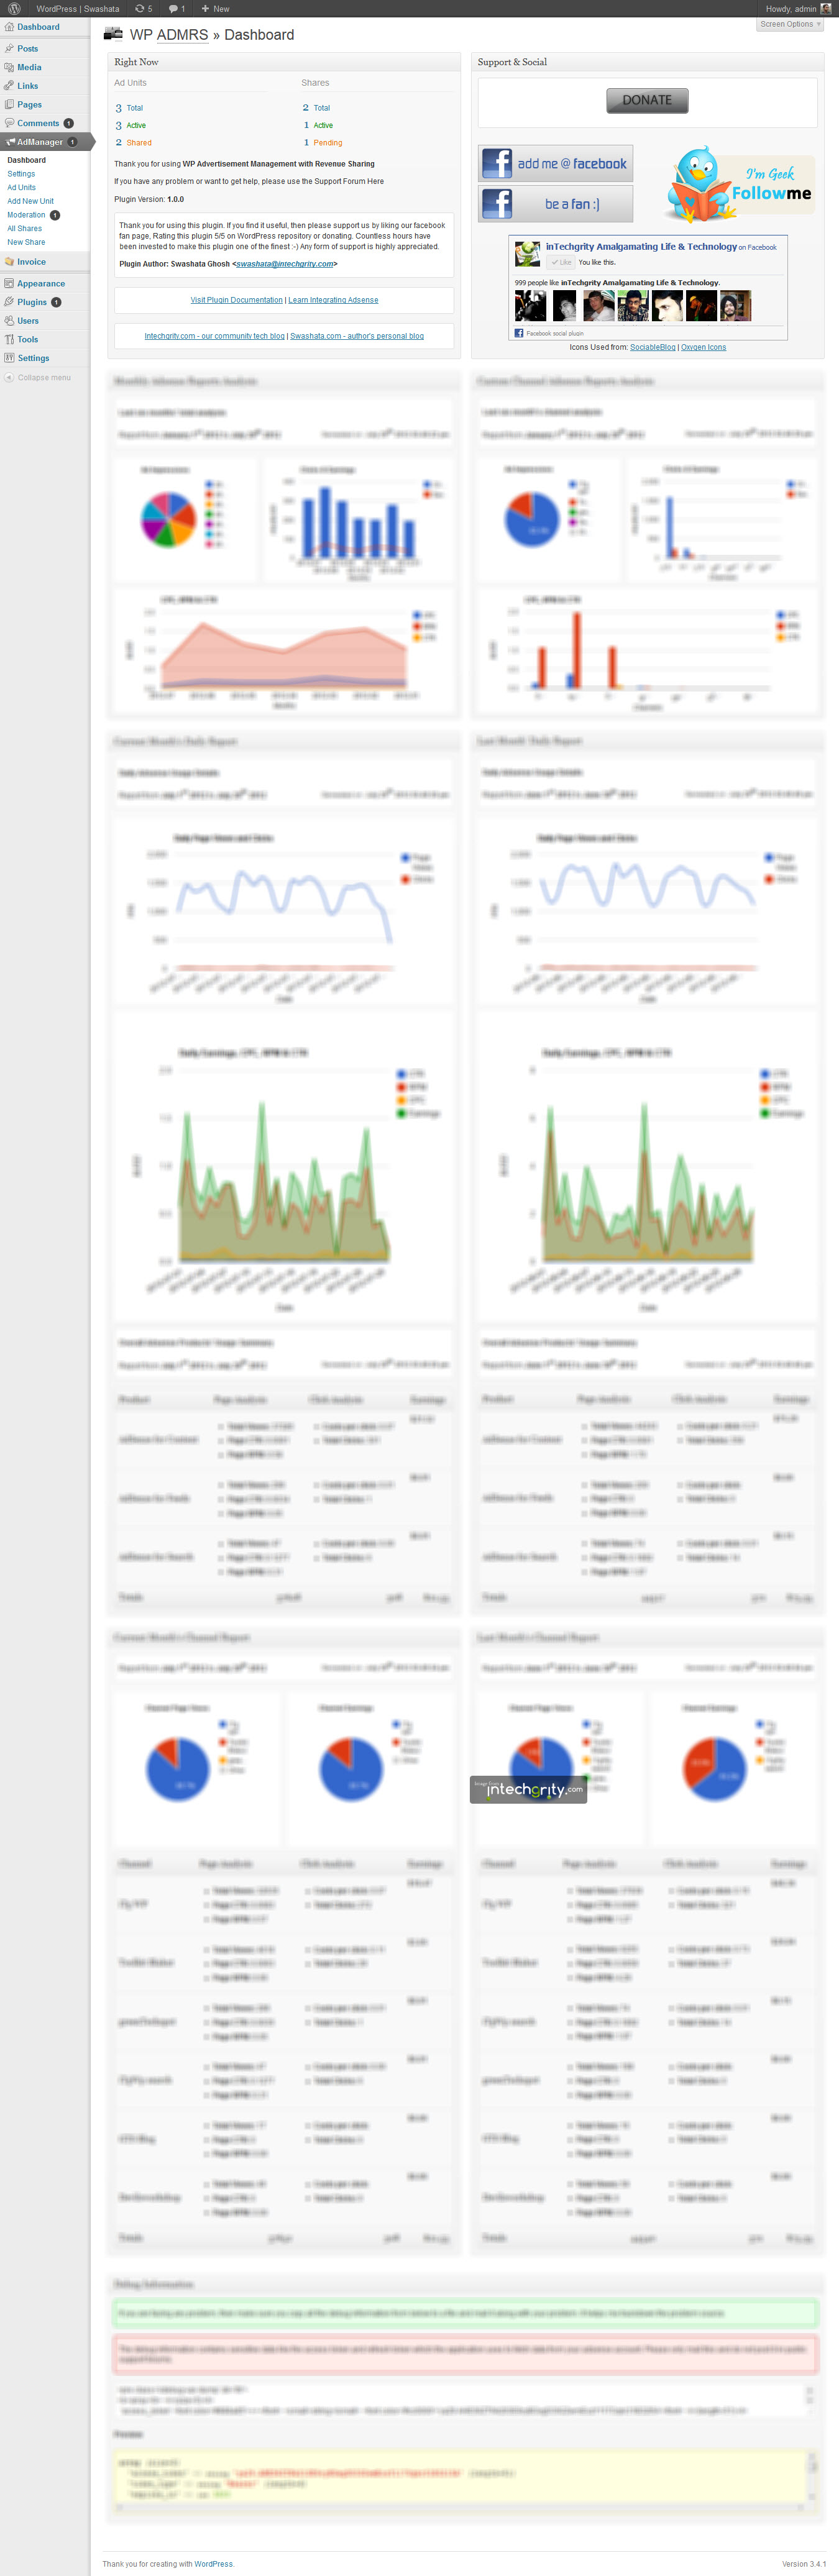 WP ADMRS Dashboard